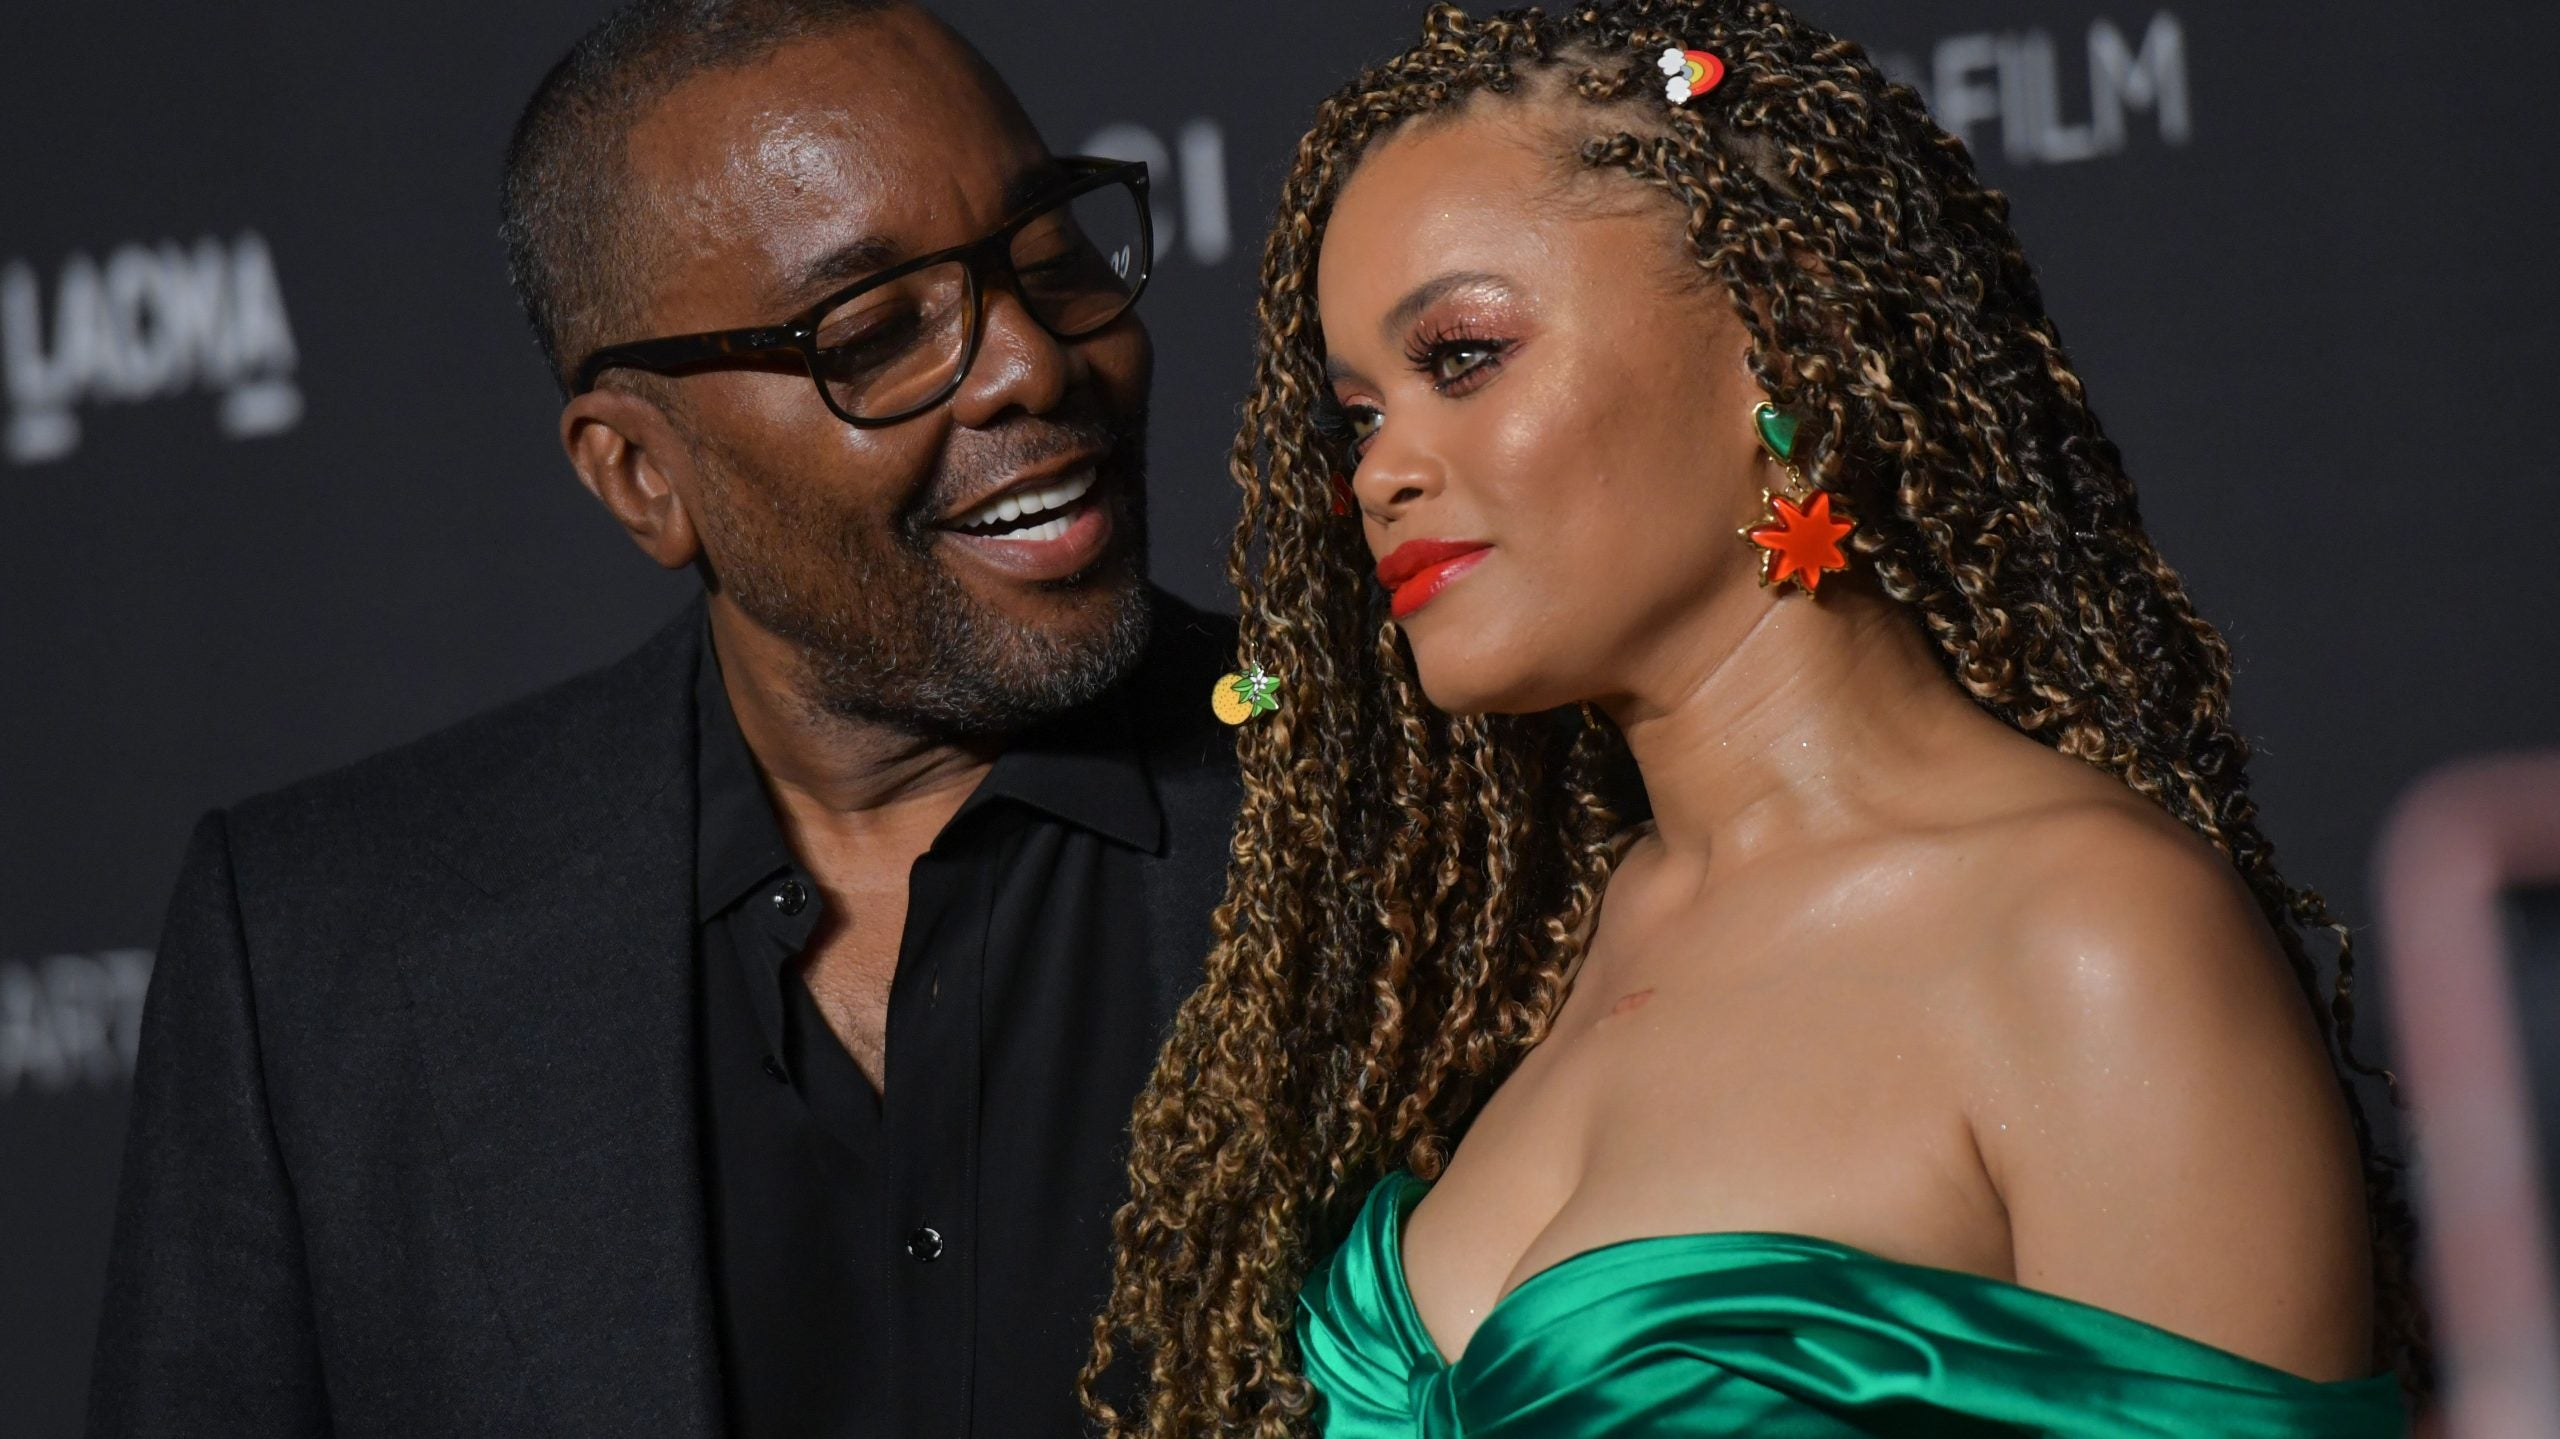 Lee Daniels's Billie Holiday Movie Was Scooped Up in An 8-Figure Deal